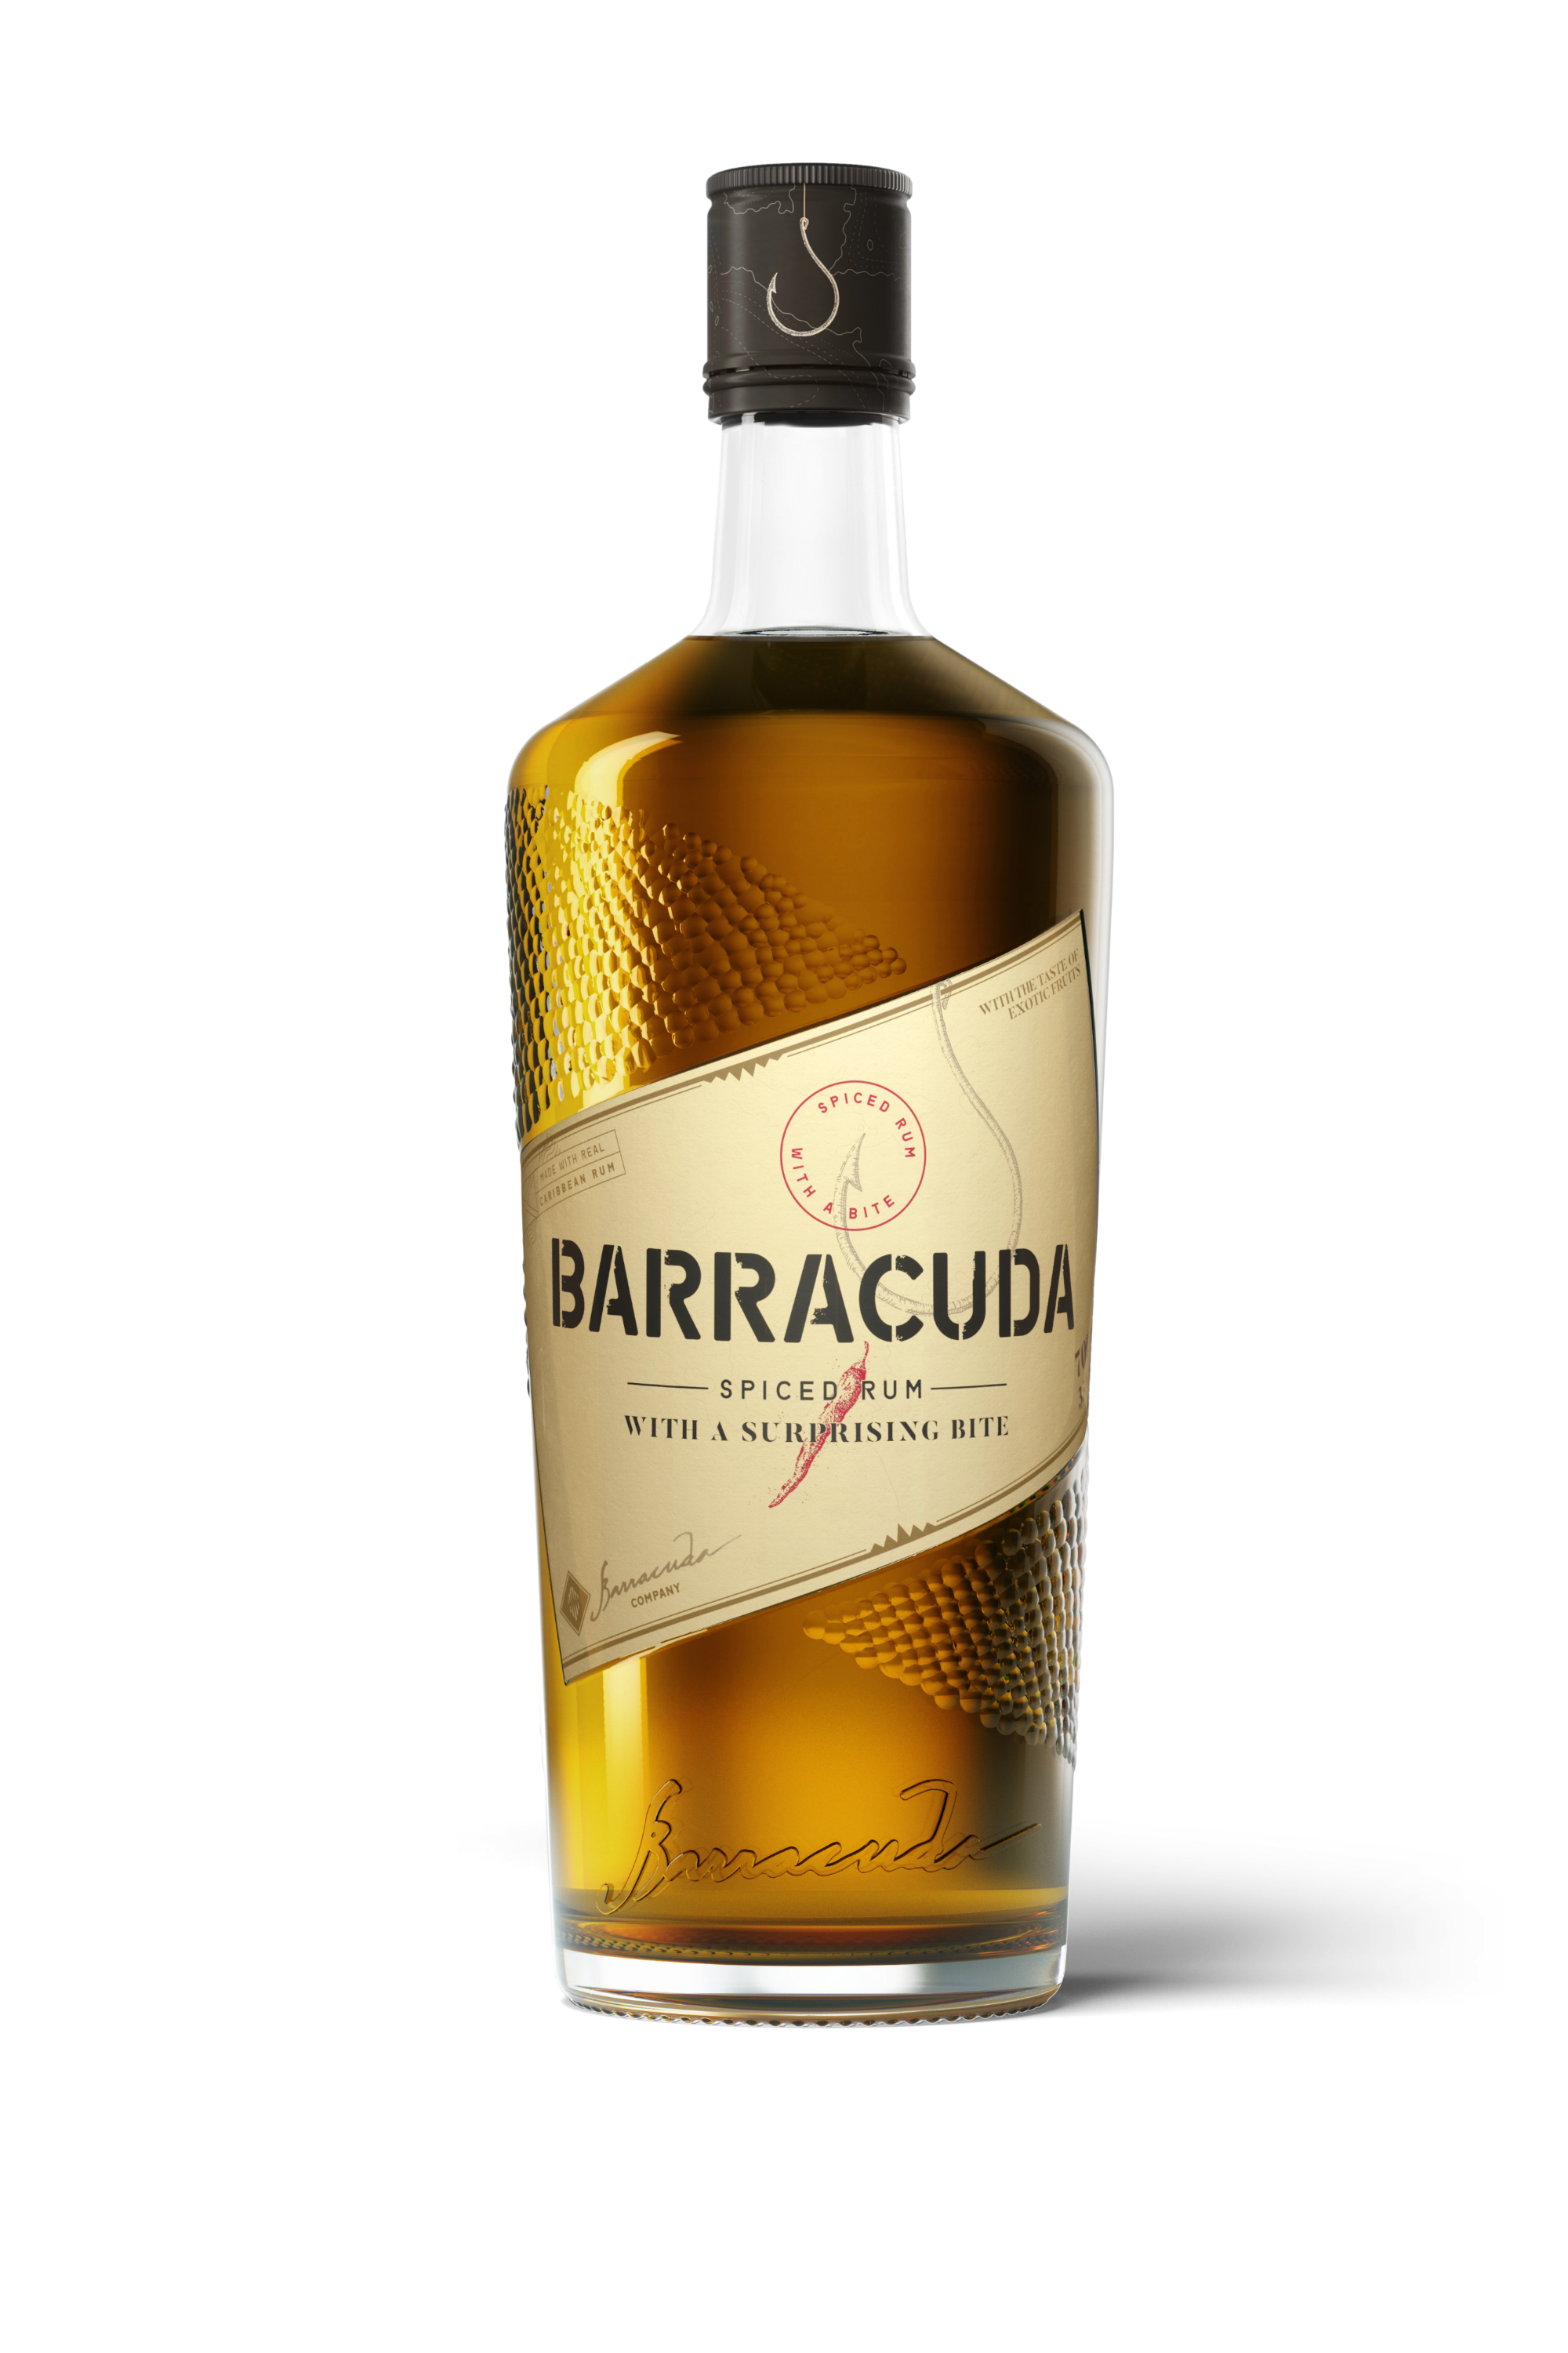 Barracuda Spiced Rum